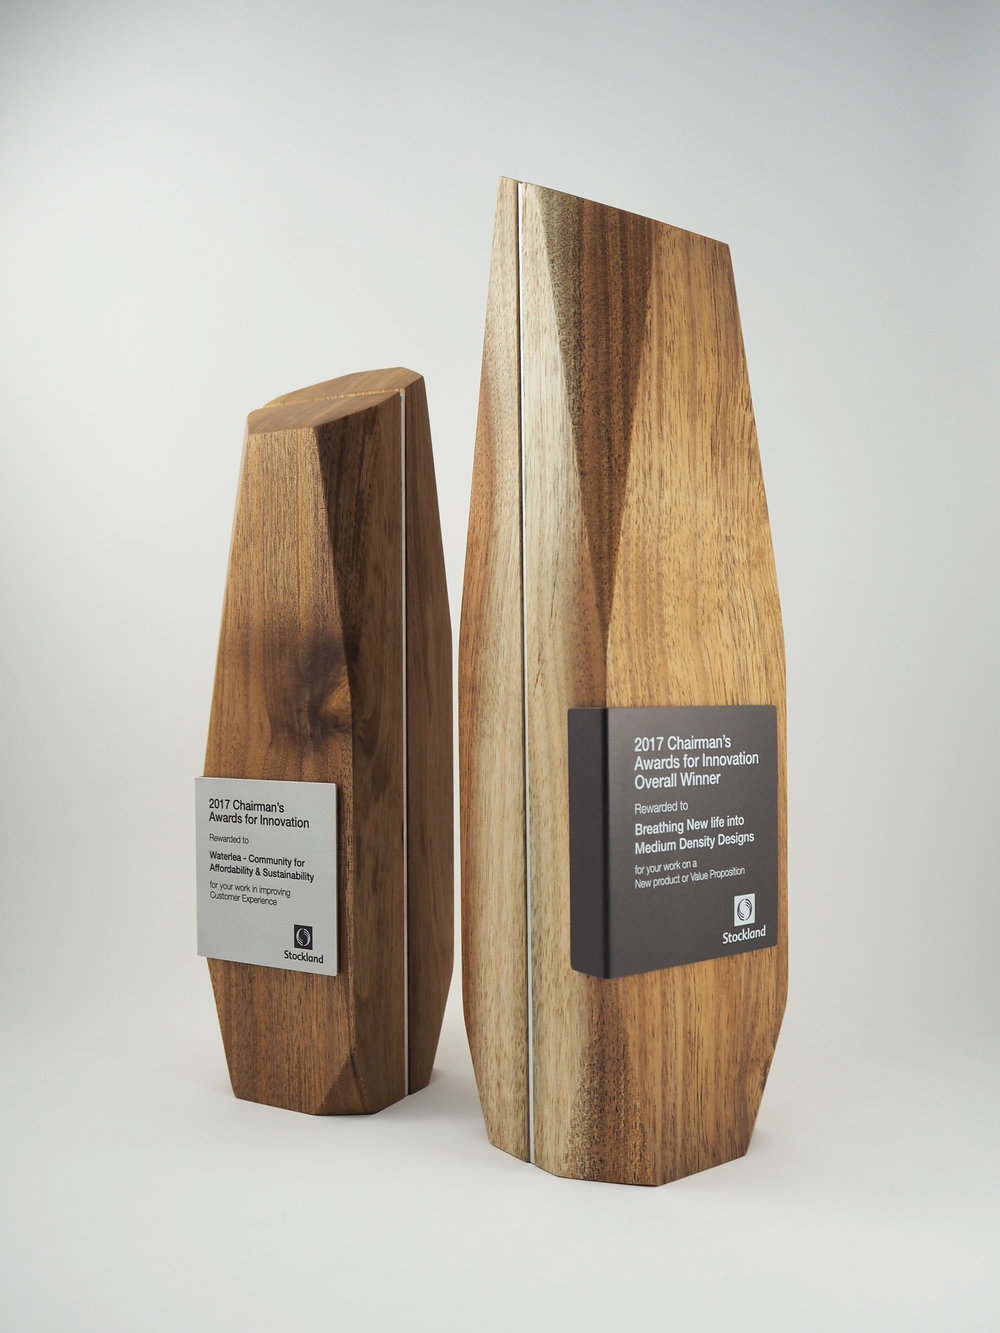 Stockland-Chairmans-timber-eco-trophy-awards-04.jpg